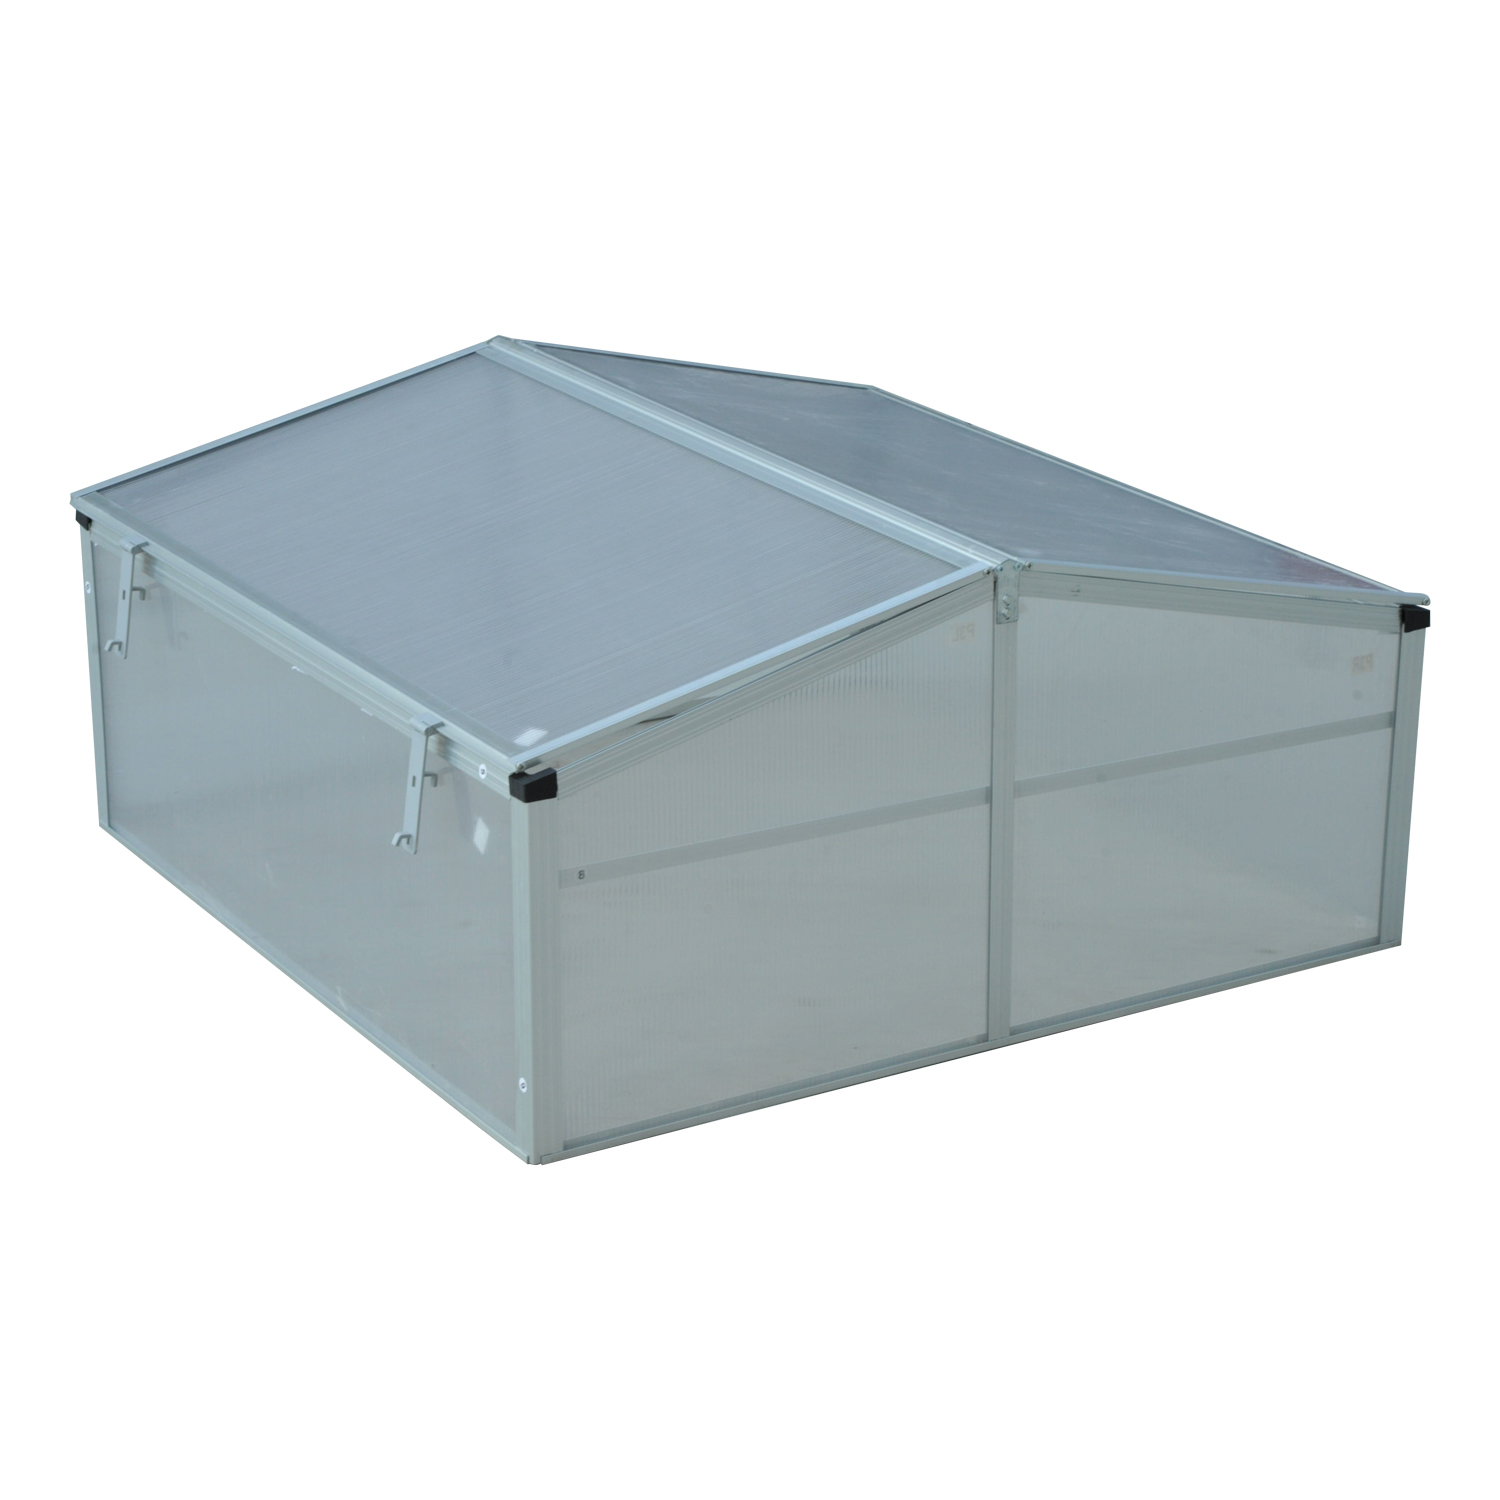 Outsunny 39 Aluminum Vented Cold Frame Greenhouse Silver Transparent by Aosom